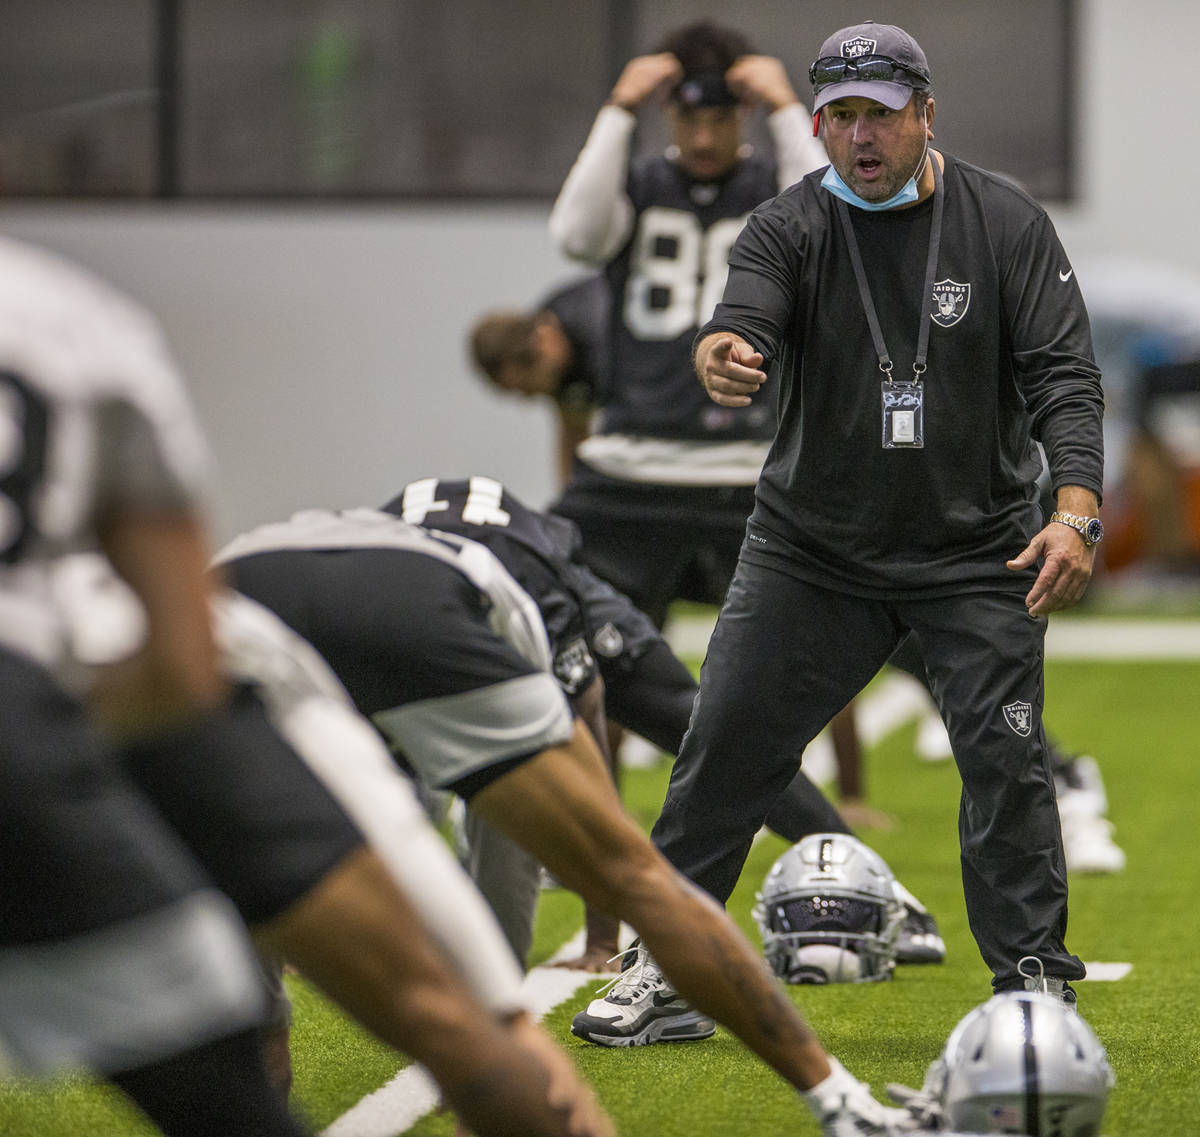 Las Vegas Raiders defensive coordinator Paul Guenther instructs a player during warm ups at the ...